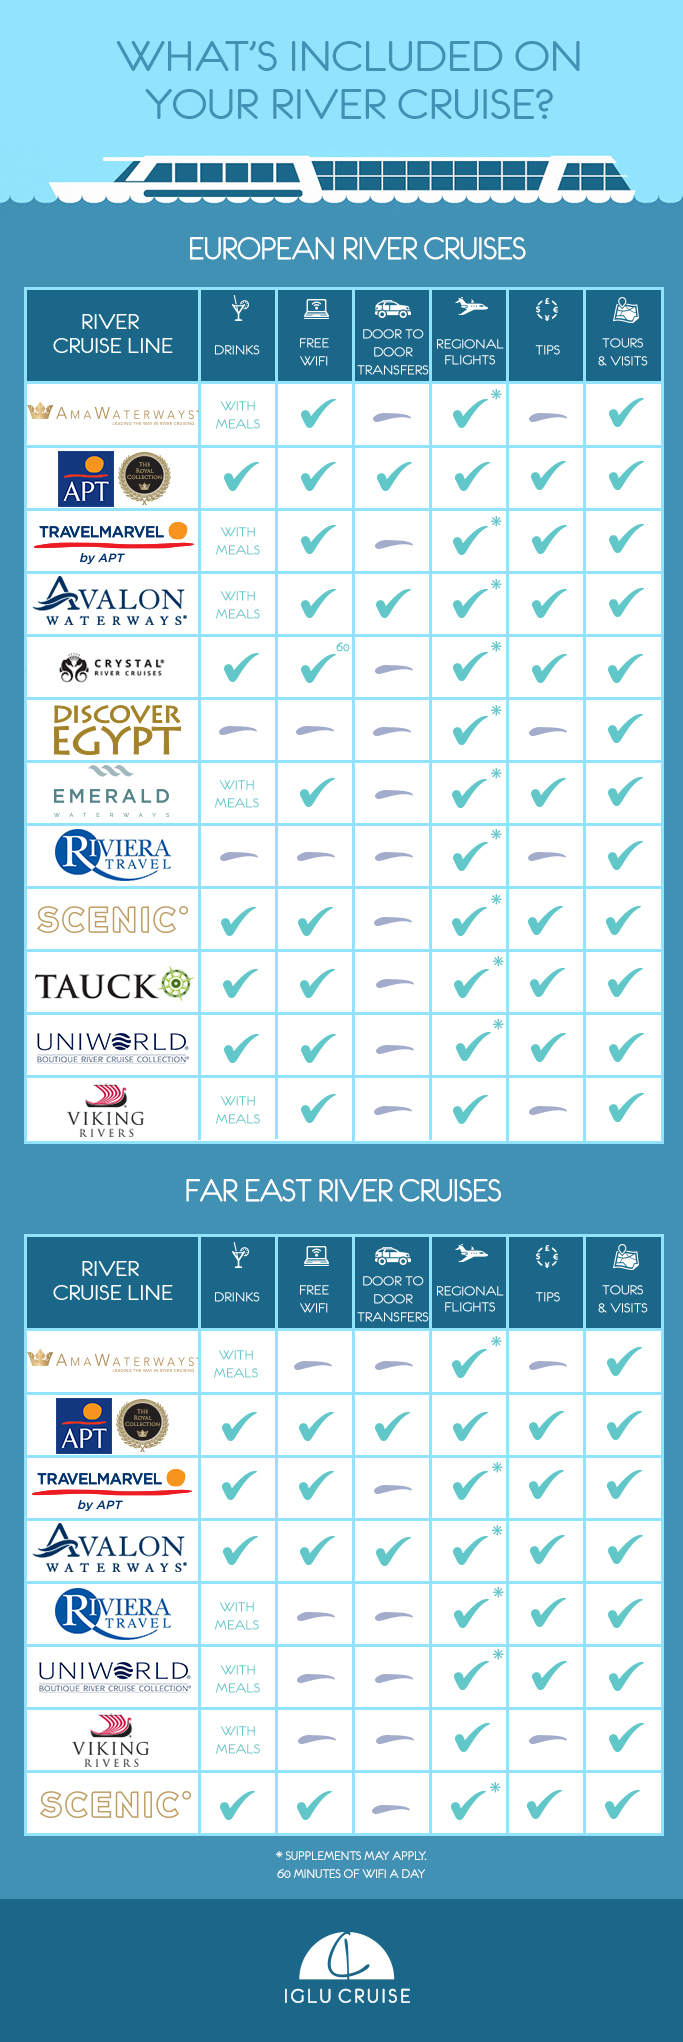 river-cruise-whats-included-updated